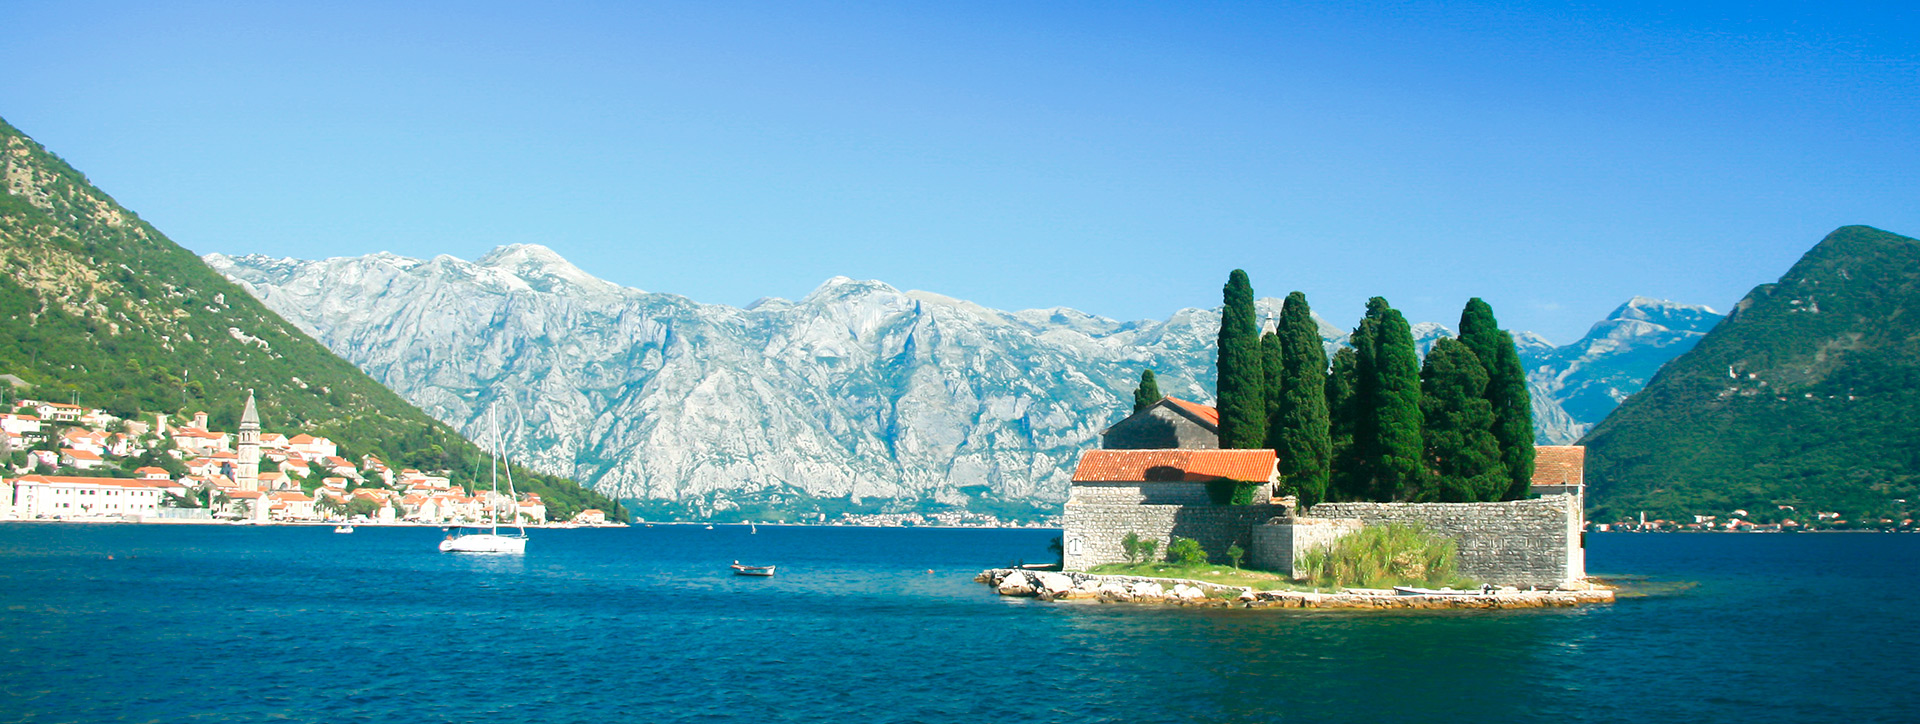 View of the town of Perast from the island of St. George, Montenegro - Adriatic sailing routes of SimpleSail